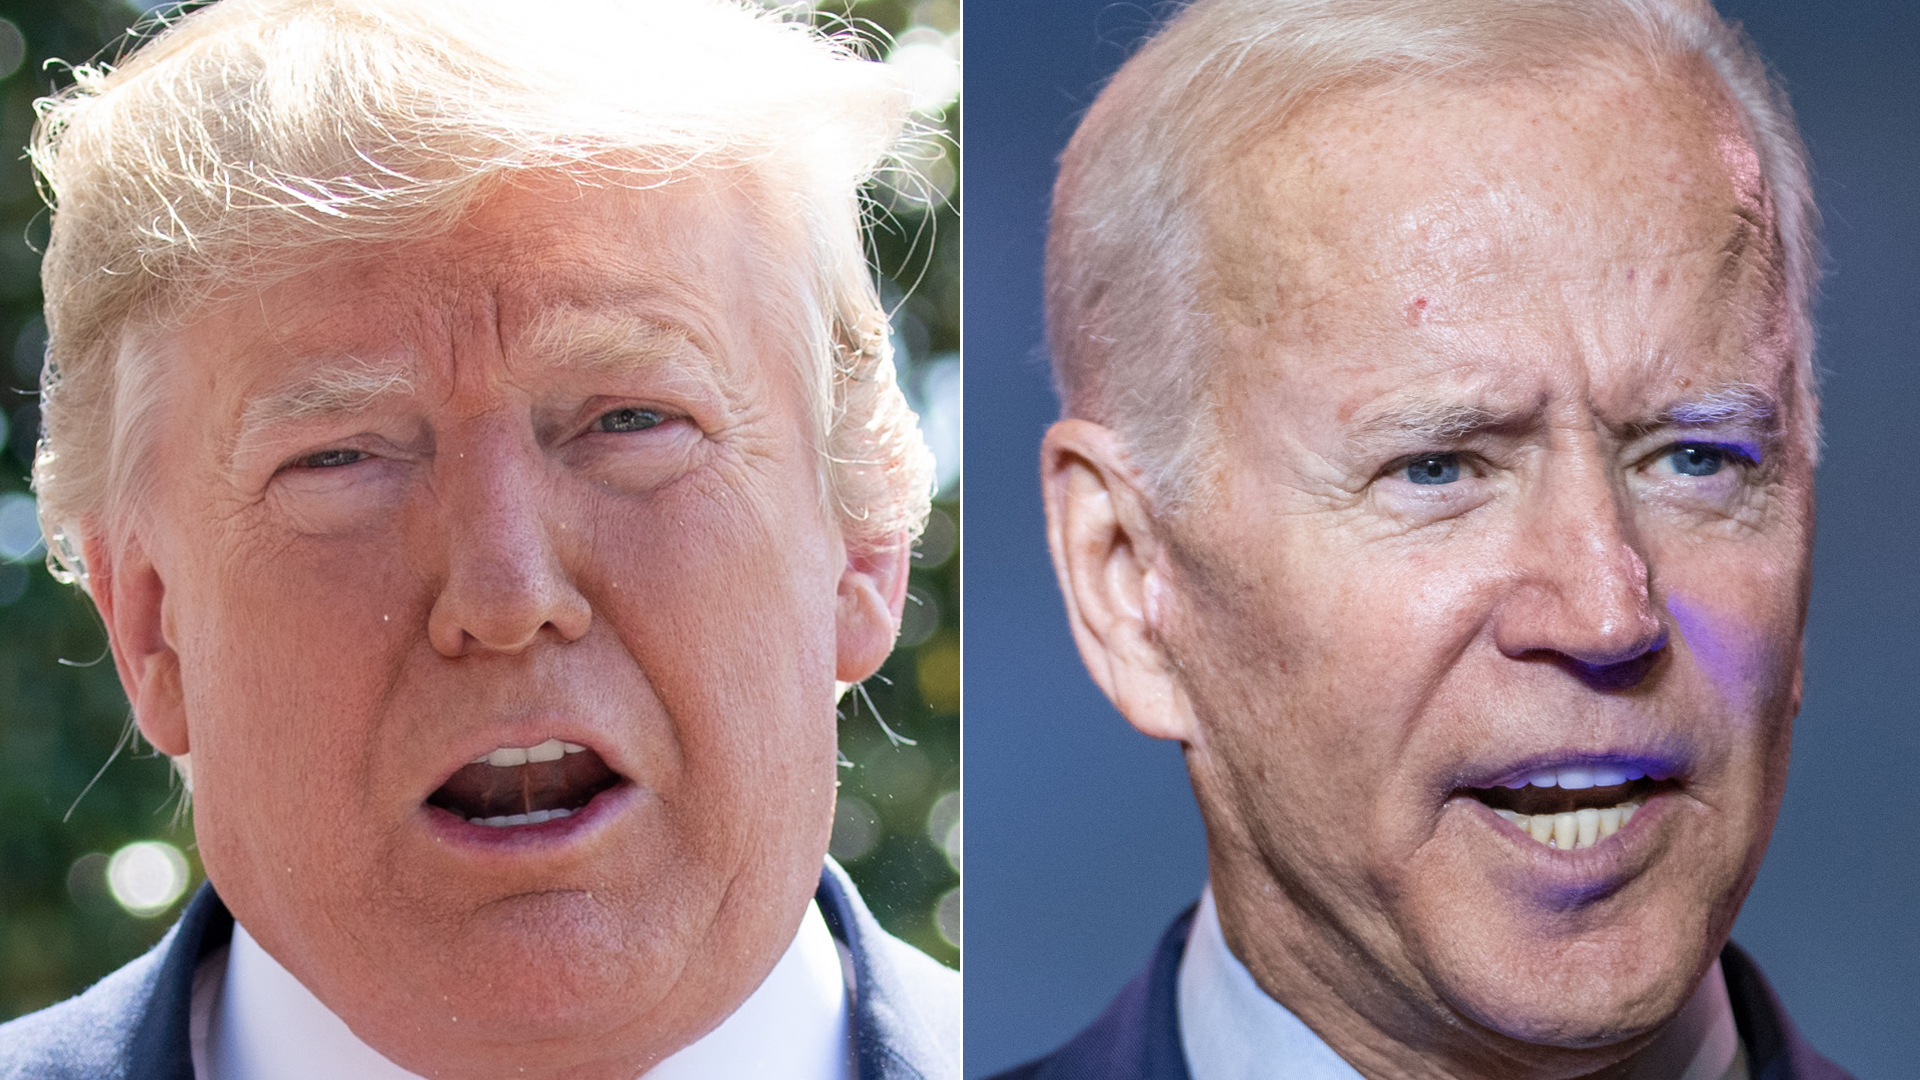 Donald Trump, left, speaks to the media prior to departing on Marine One from the South Lawn of the White House in Washington, D.C. on June 22, 2019. Joe Biden, right, speaks to the crowd during the 2019 South Carolina Democratic Party State Convention on June 22, 2019. (Credit: SAUL LOEB/AFP/Getty Images; Sean Rayford/Getty Images)